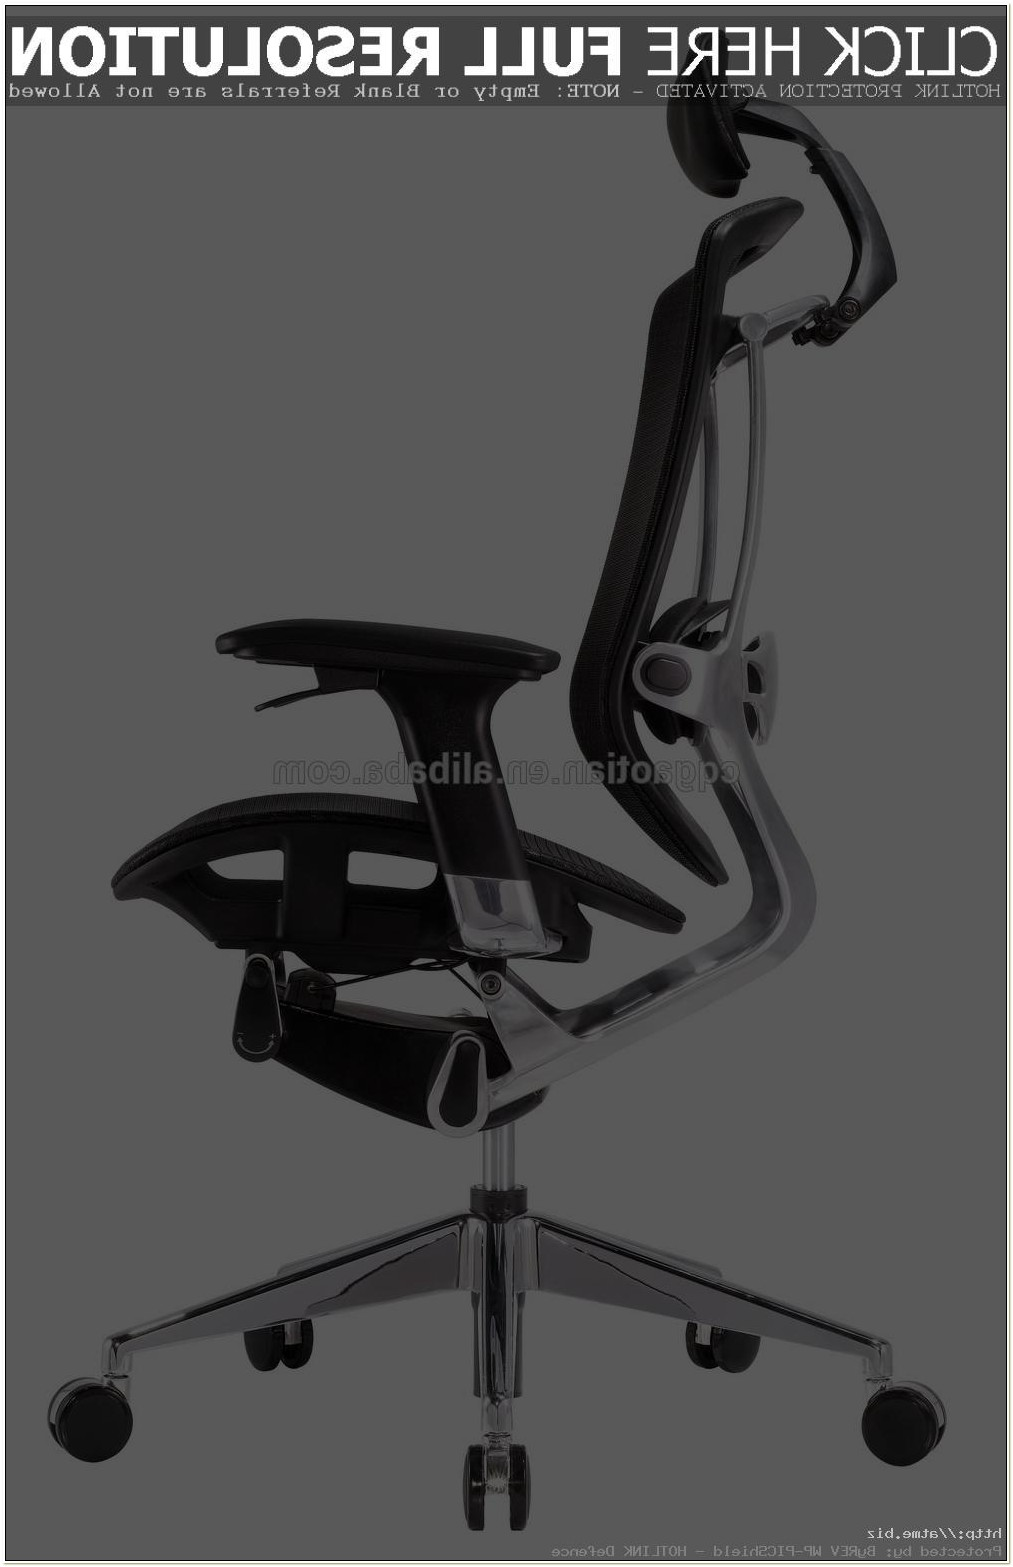 Top Rated Office Chairs 2015